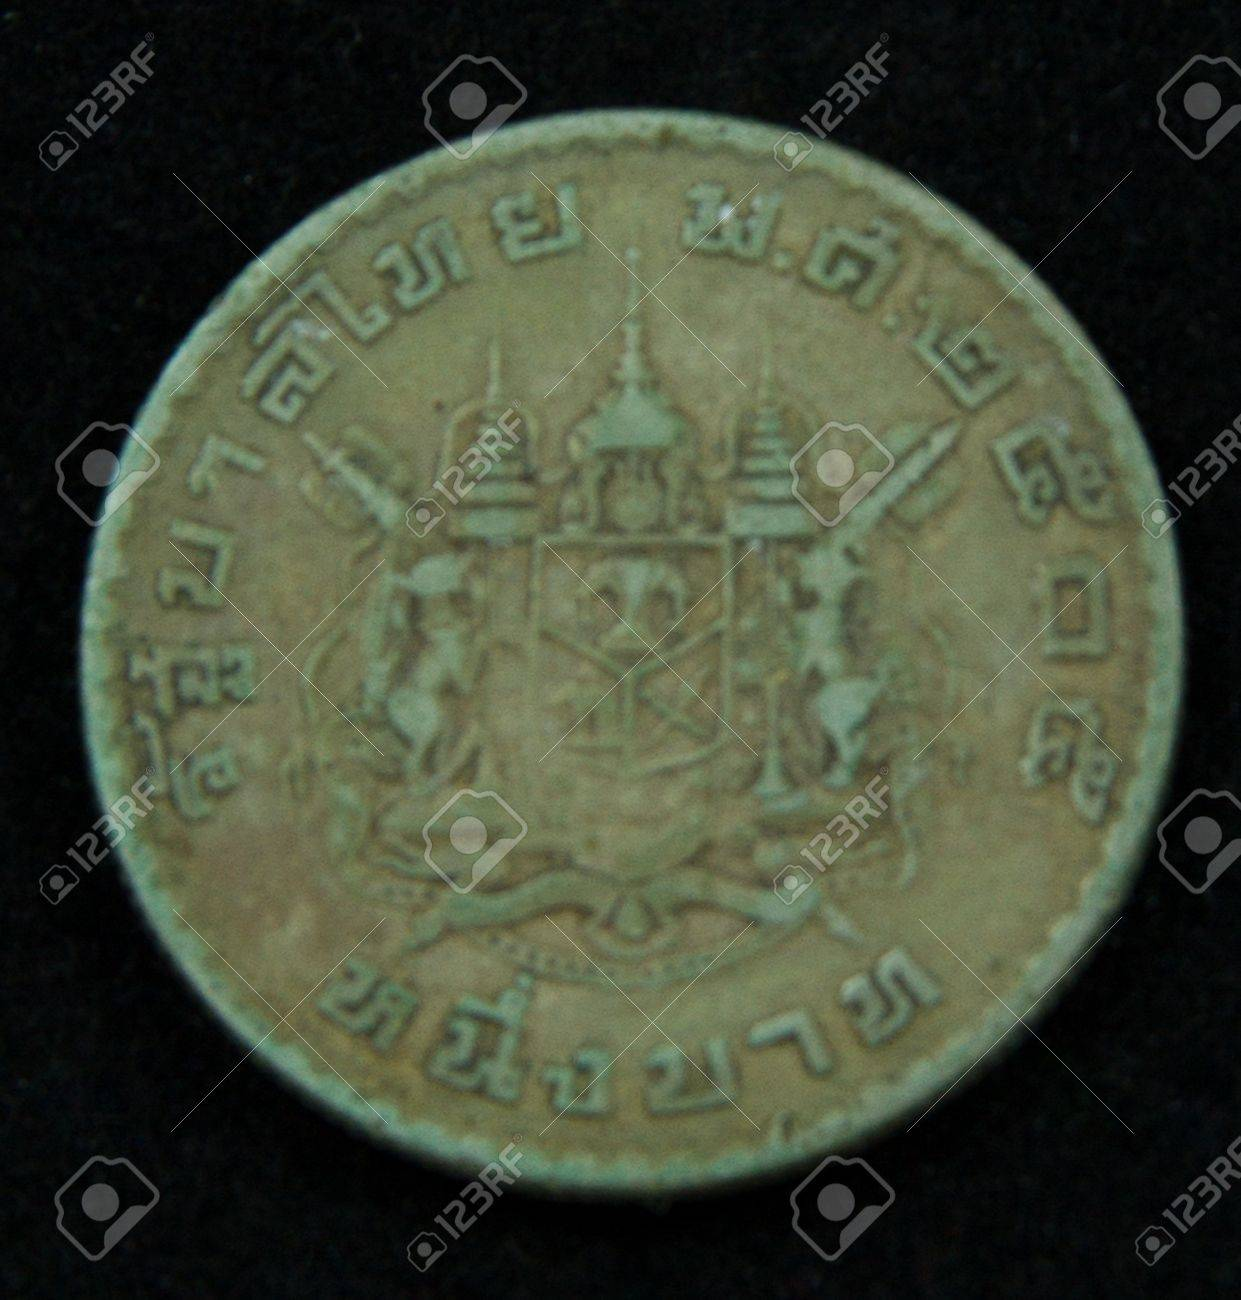 Old coin in Thailand, which is obsolete today Stock Photo - 17142784